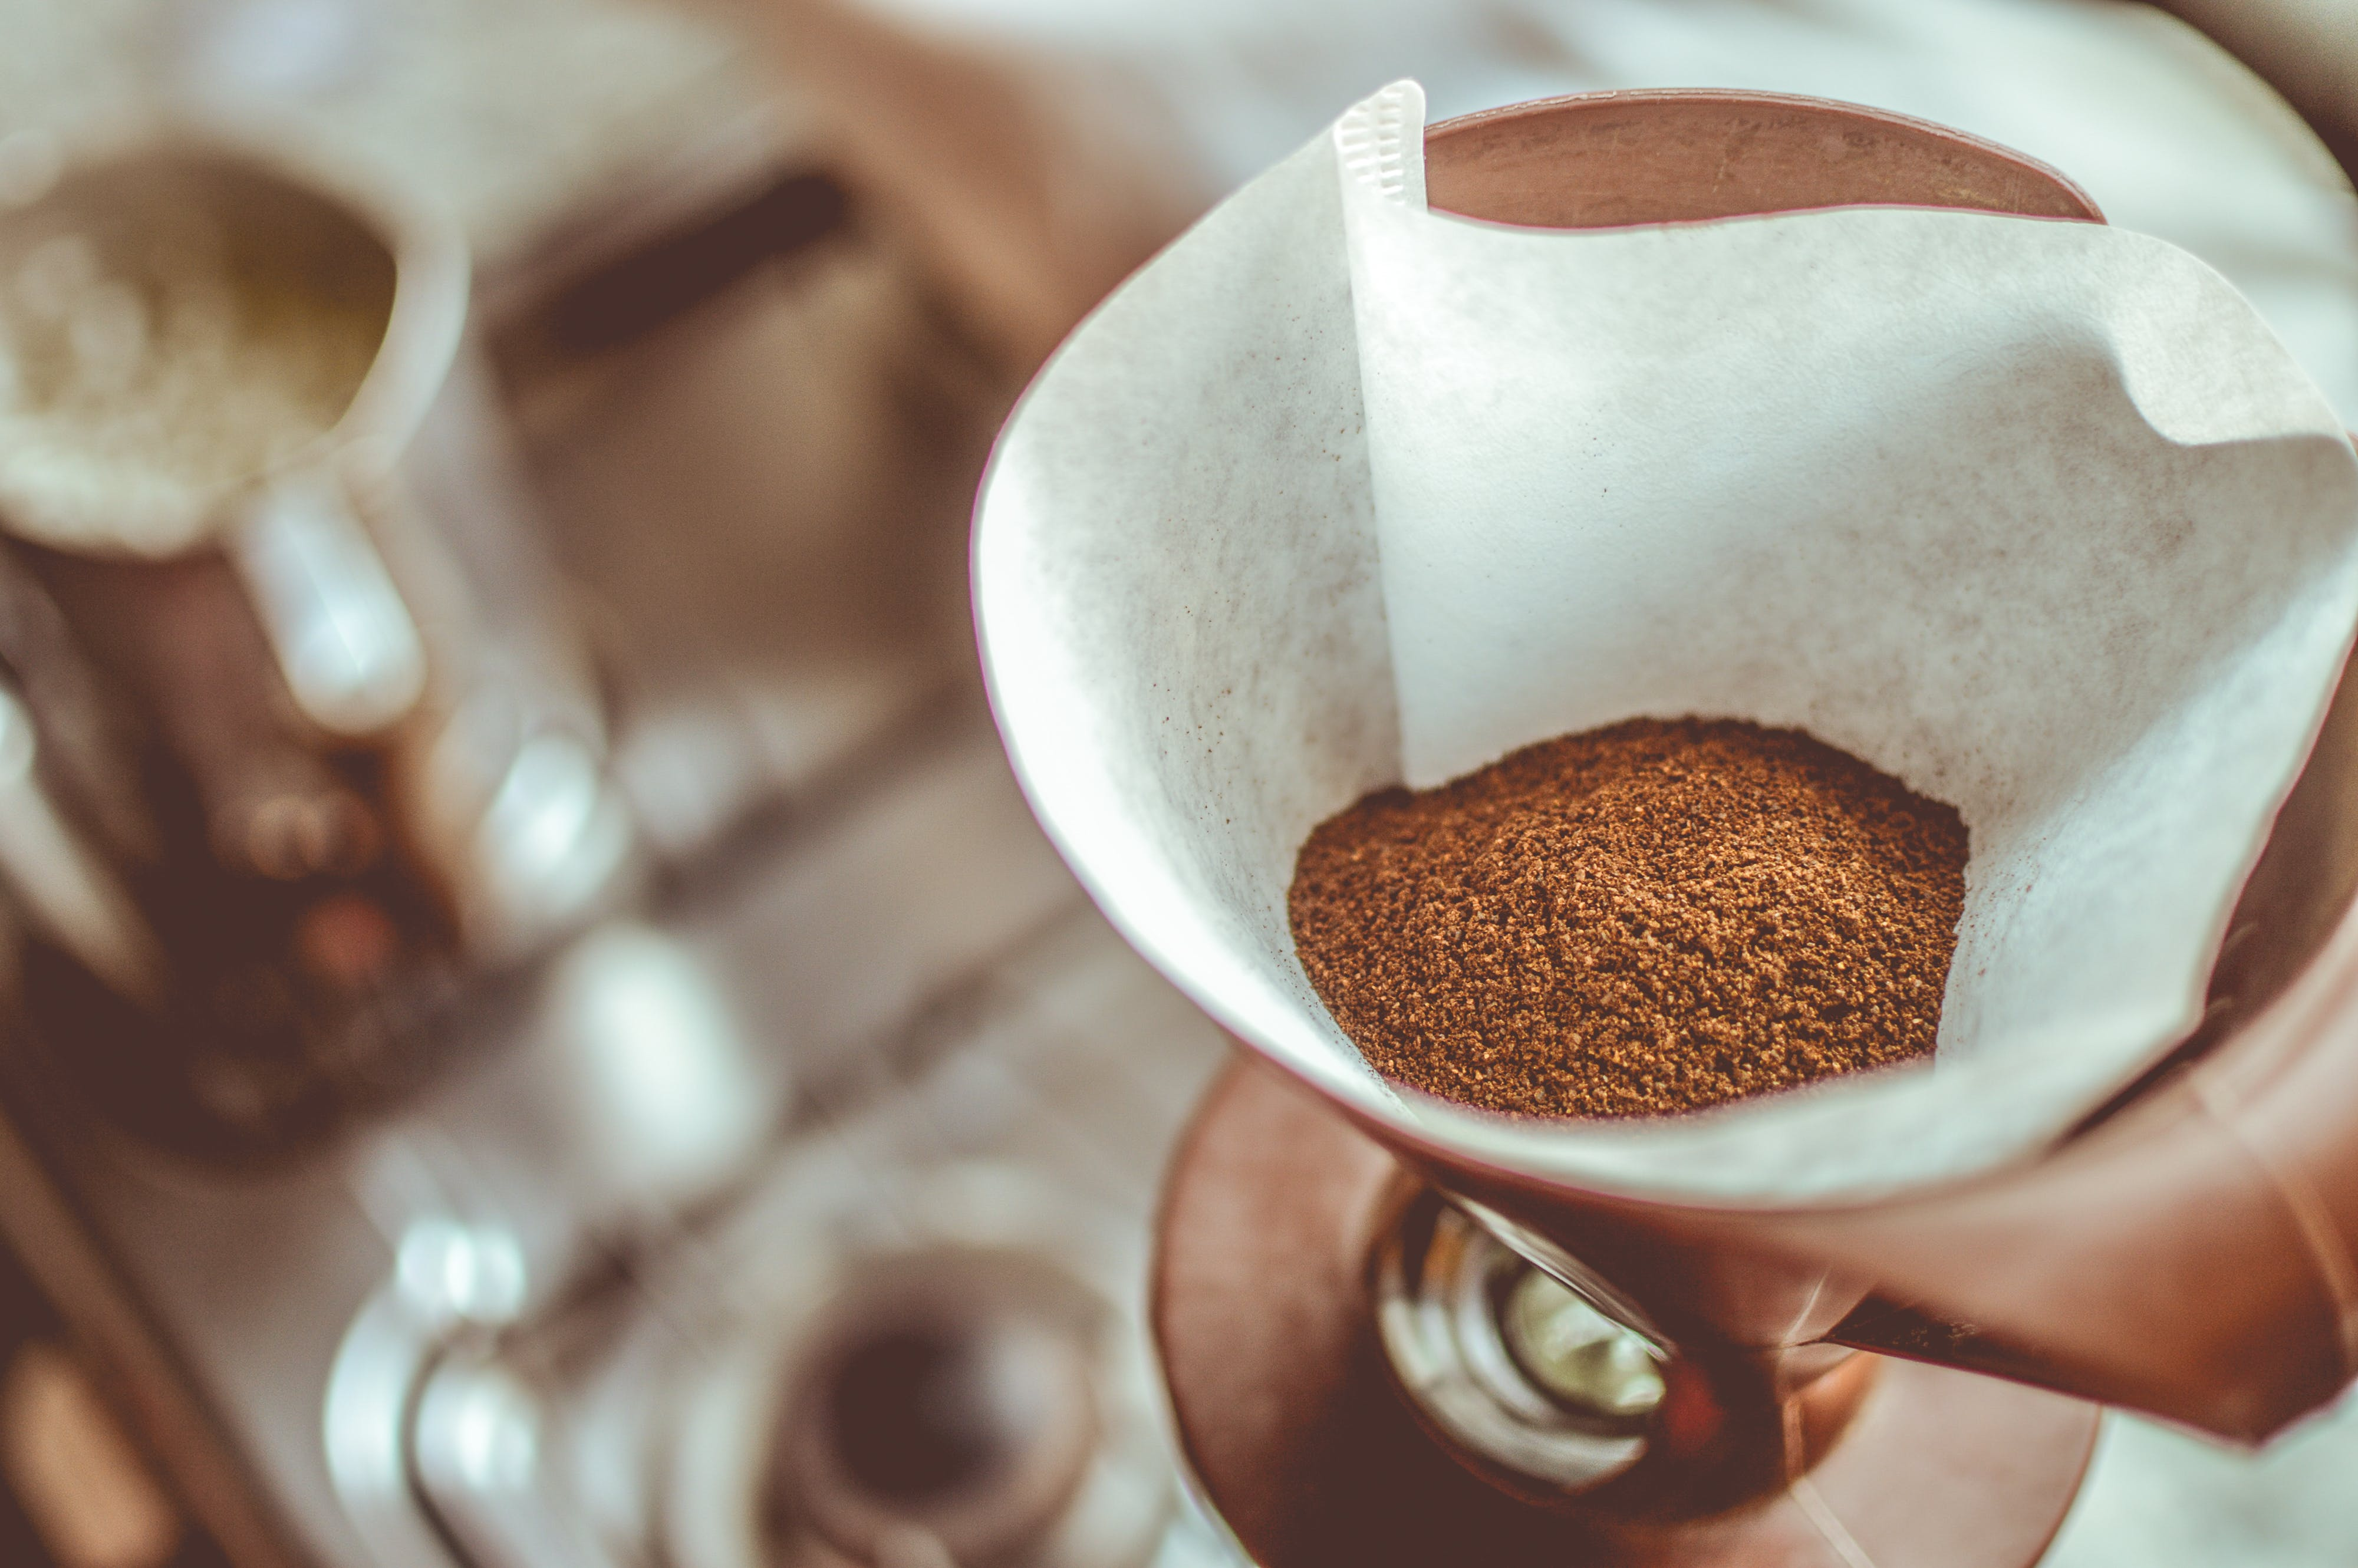 Brown Coffee on White Strainer